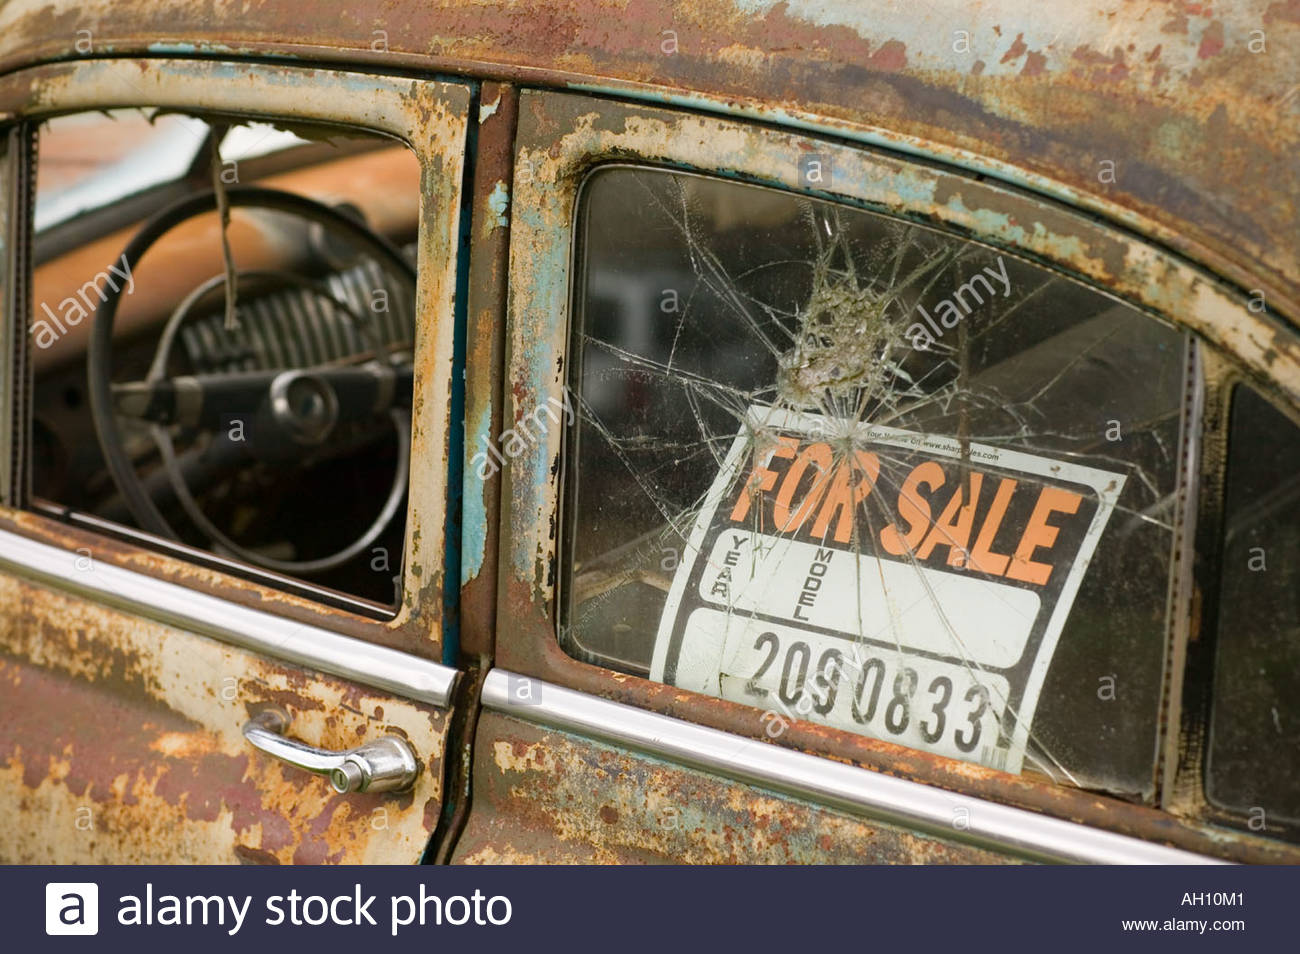 Old Rusted Car With For Sale Sign In The Window Sitting In A Field  Free For Sale Signs For Cars